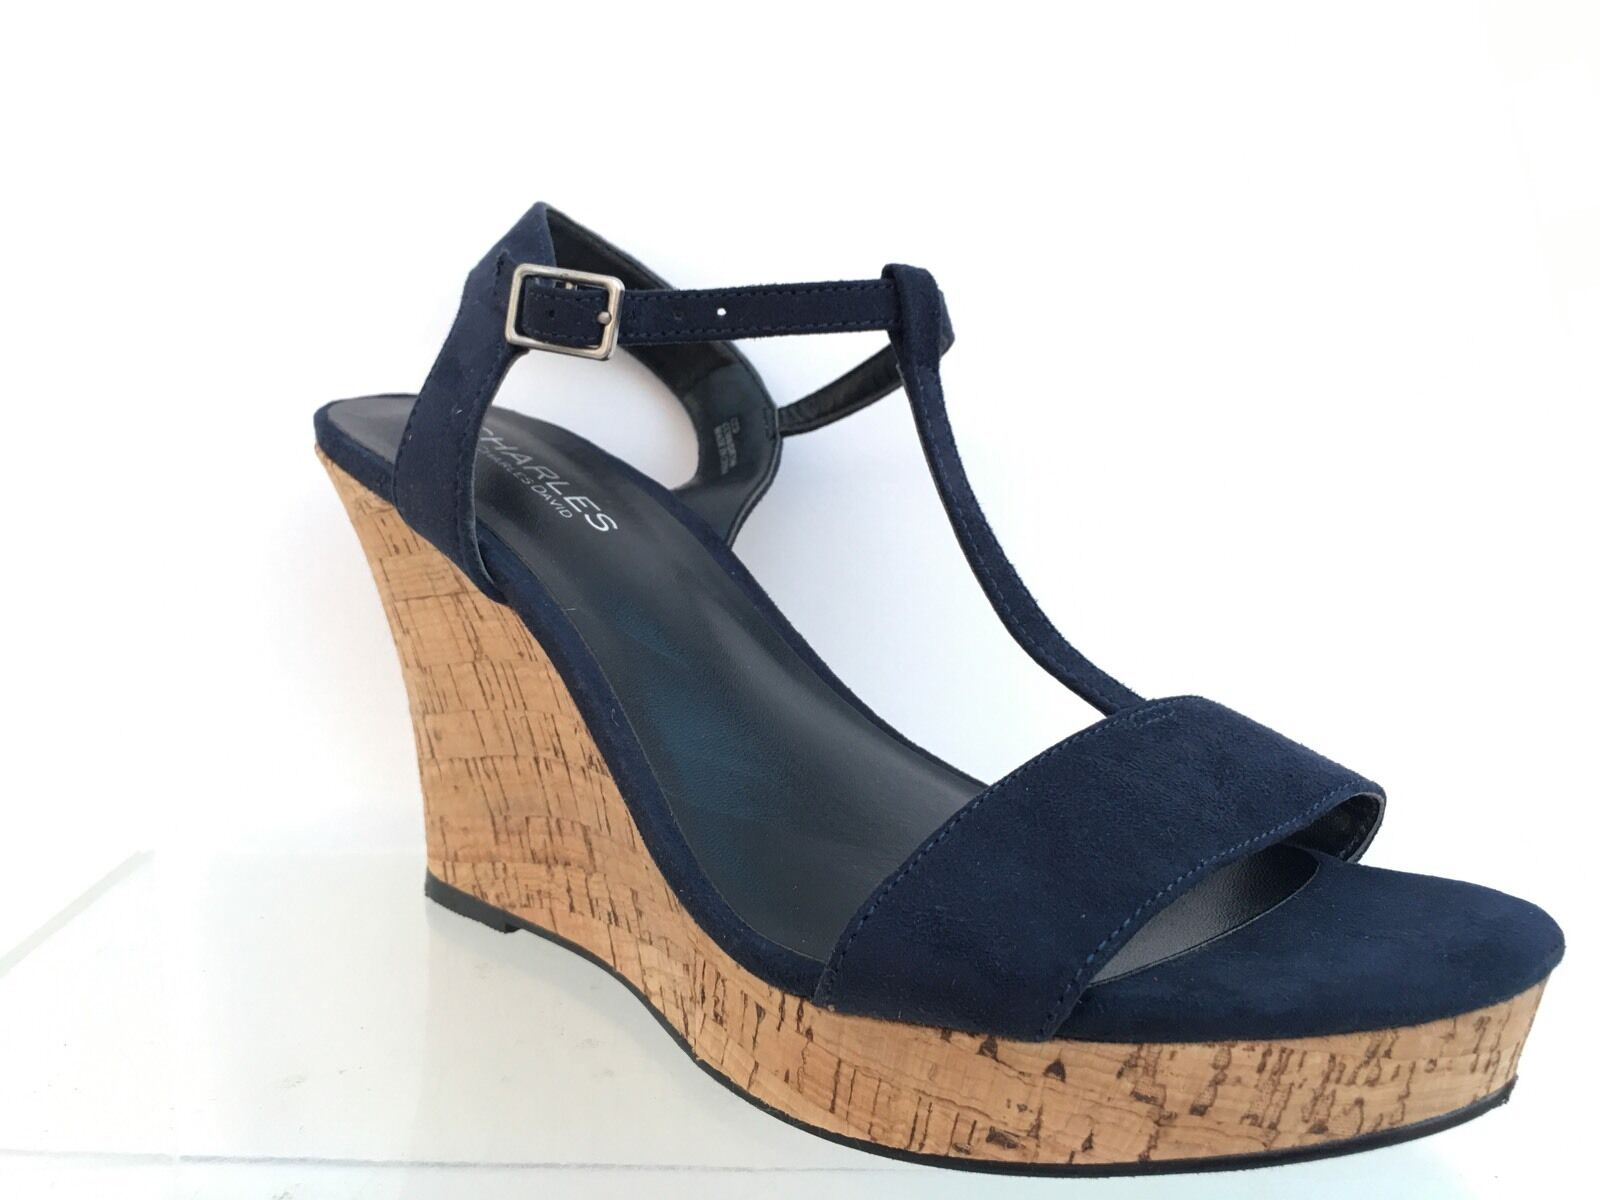 Charles By Charles David Espadrille Wedge Sandal chaussures bleu 8.5